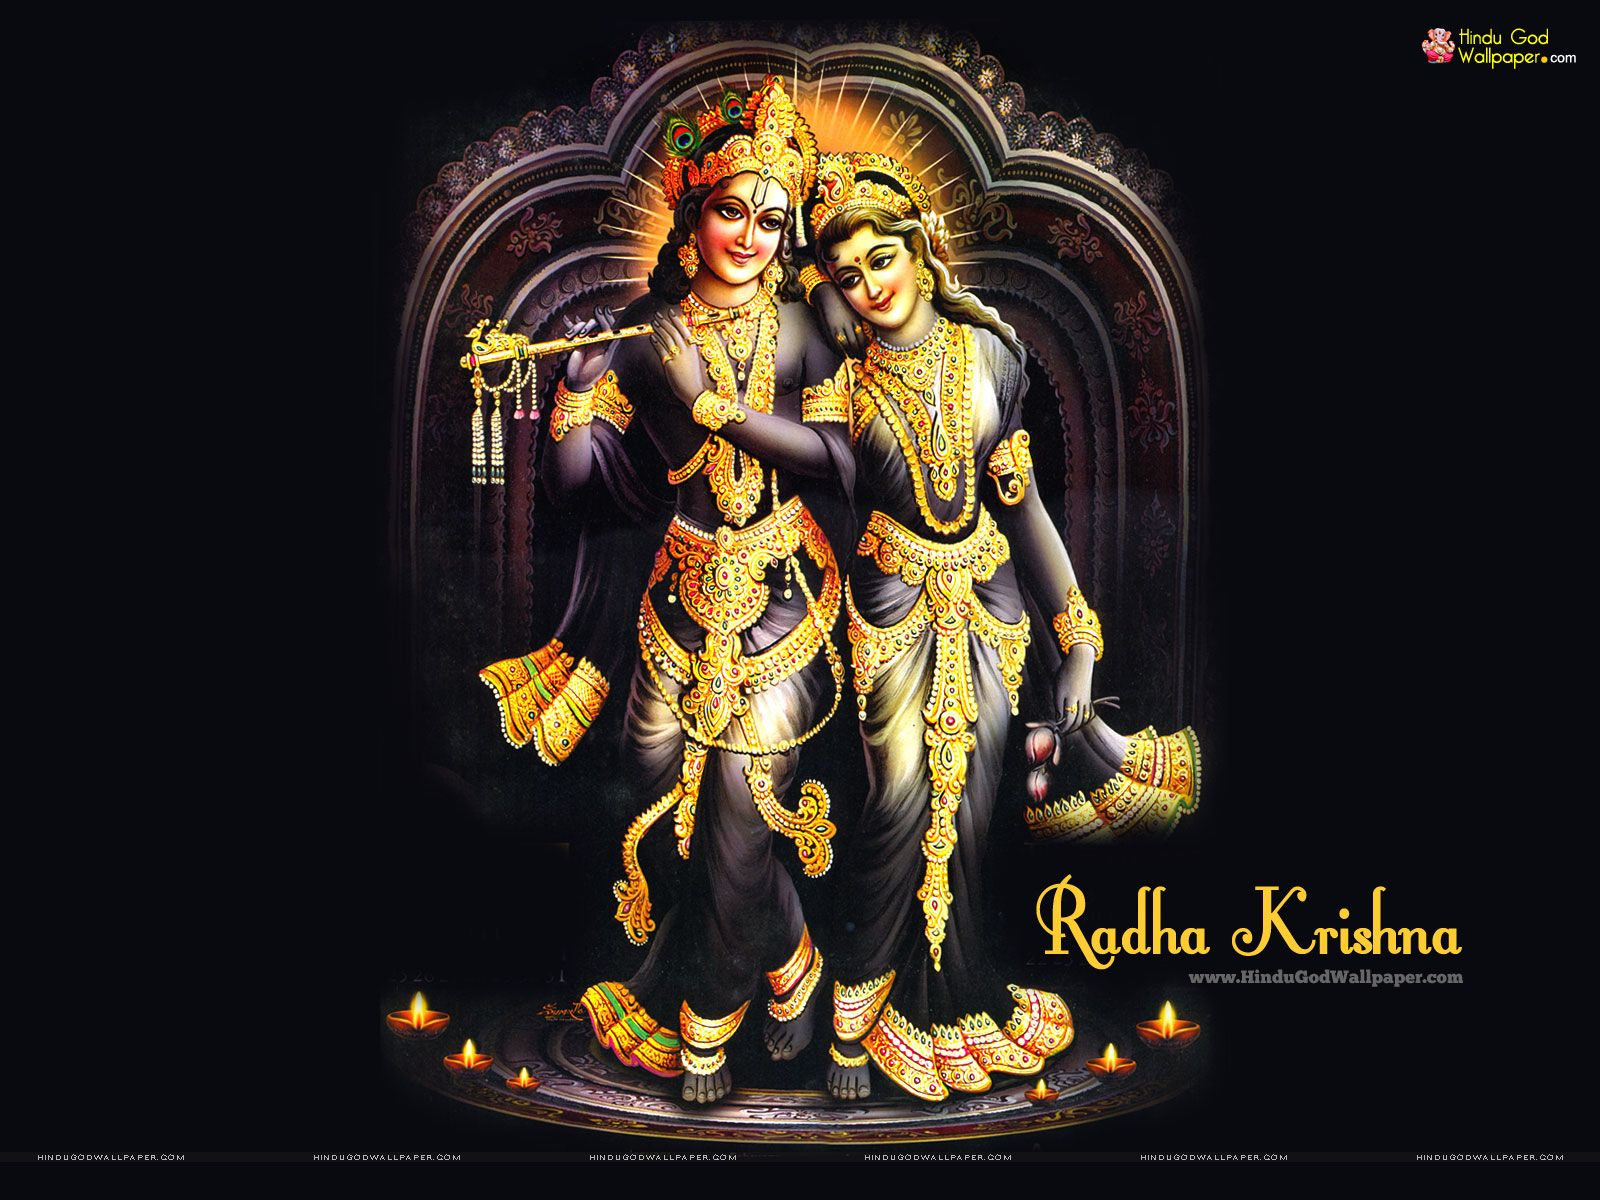 Hd wallpaper krishna and radha - Radha Krishna Wallpaper Hd Full Size 1600x1200px